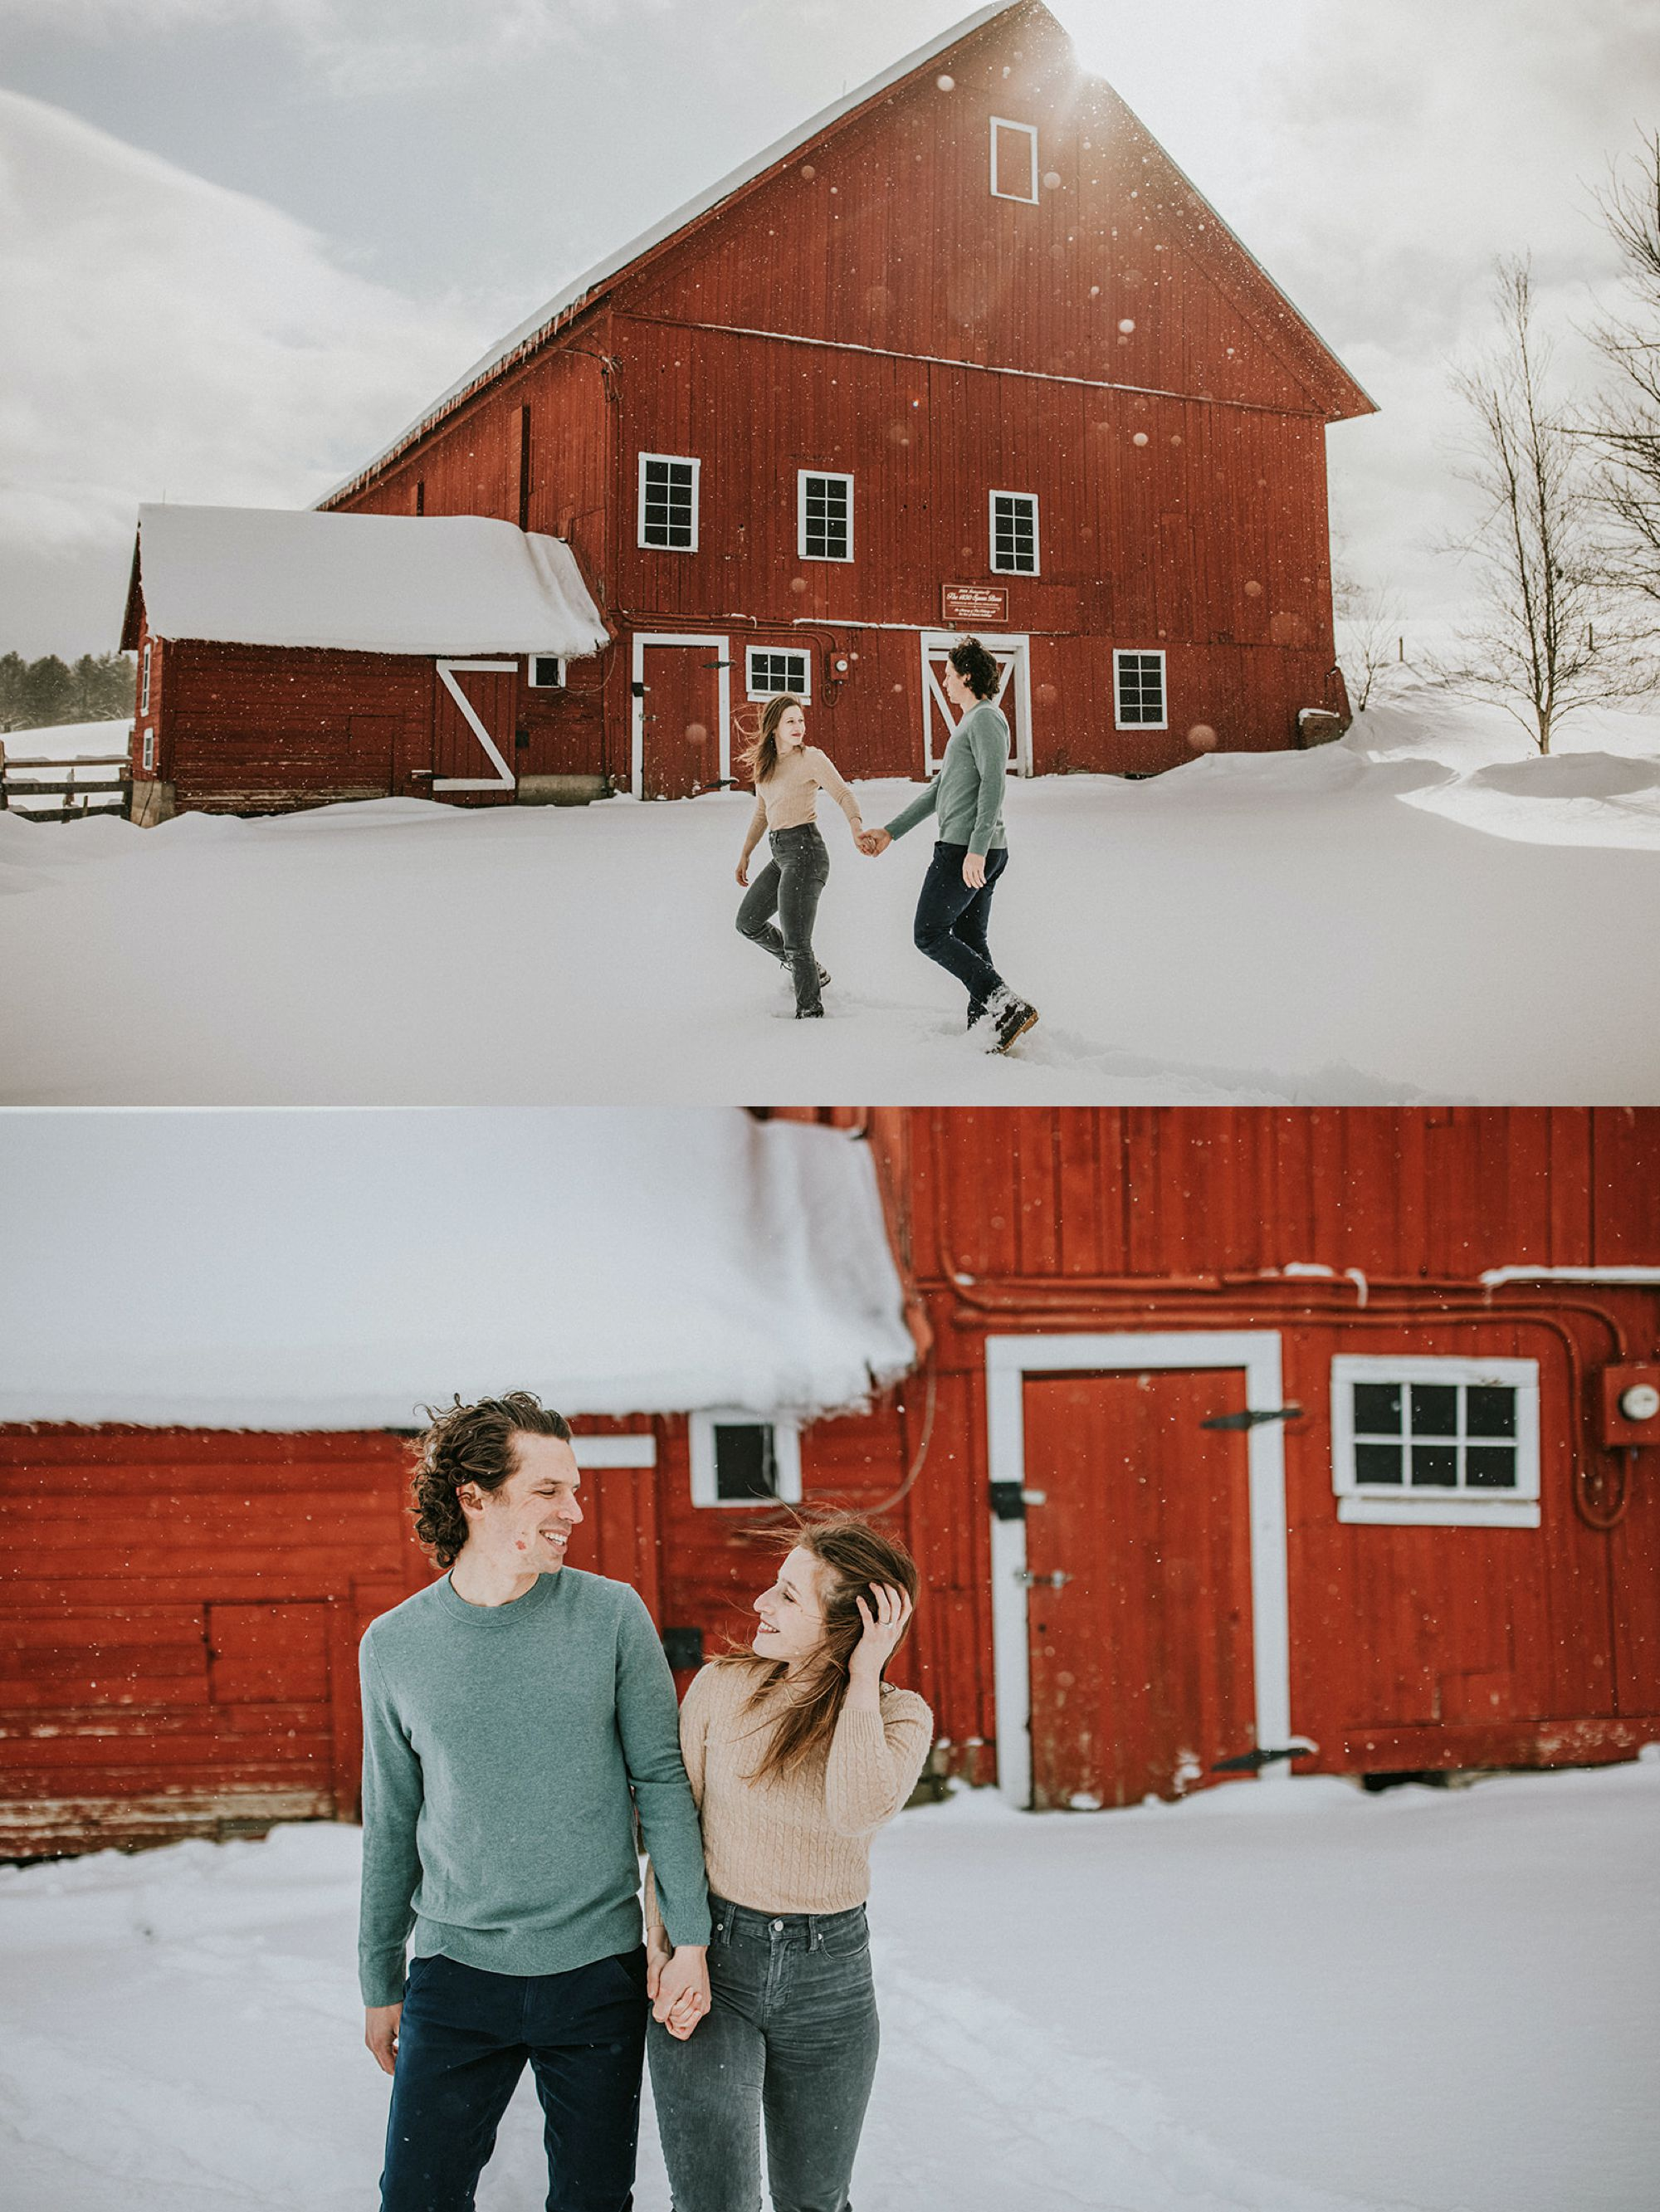 Spear Farm Barn Engagement Walking